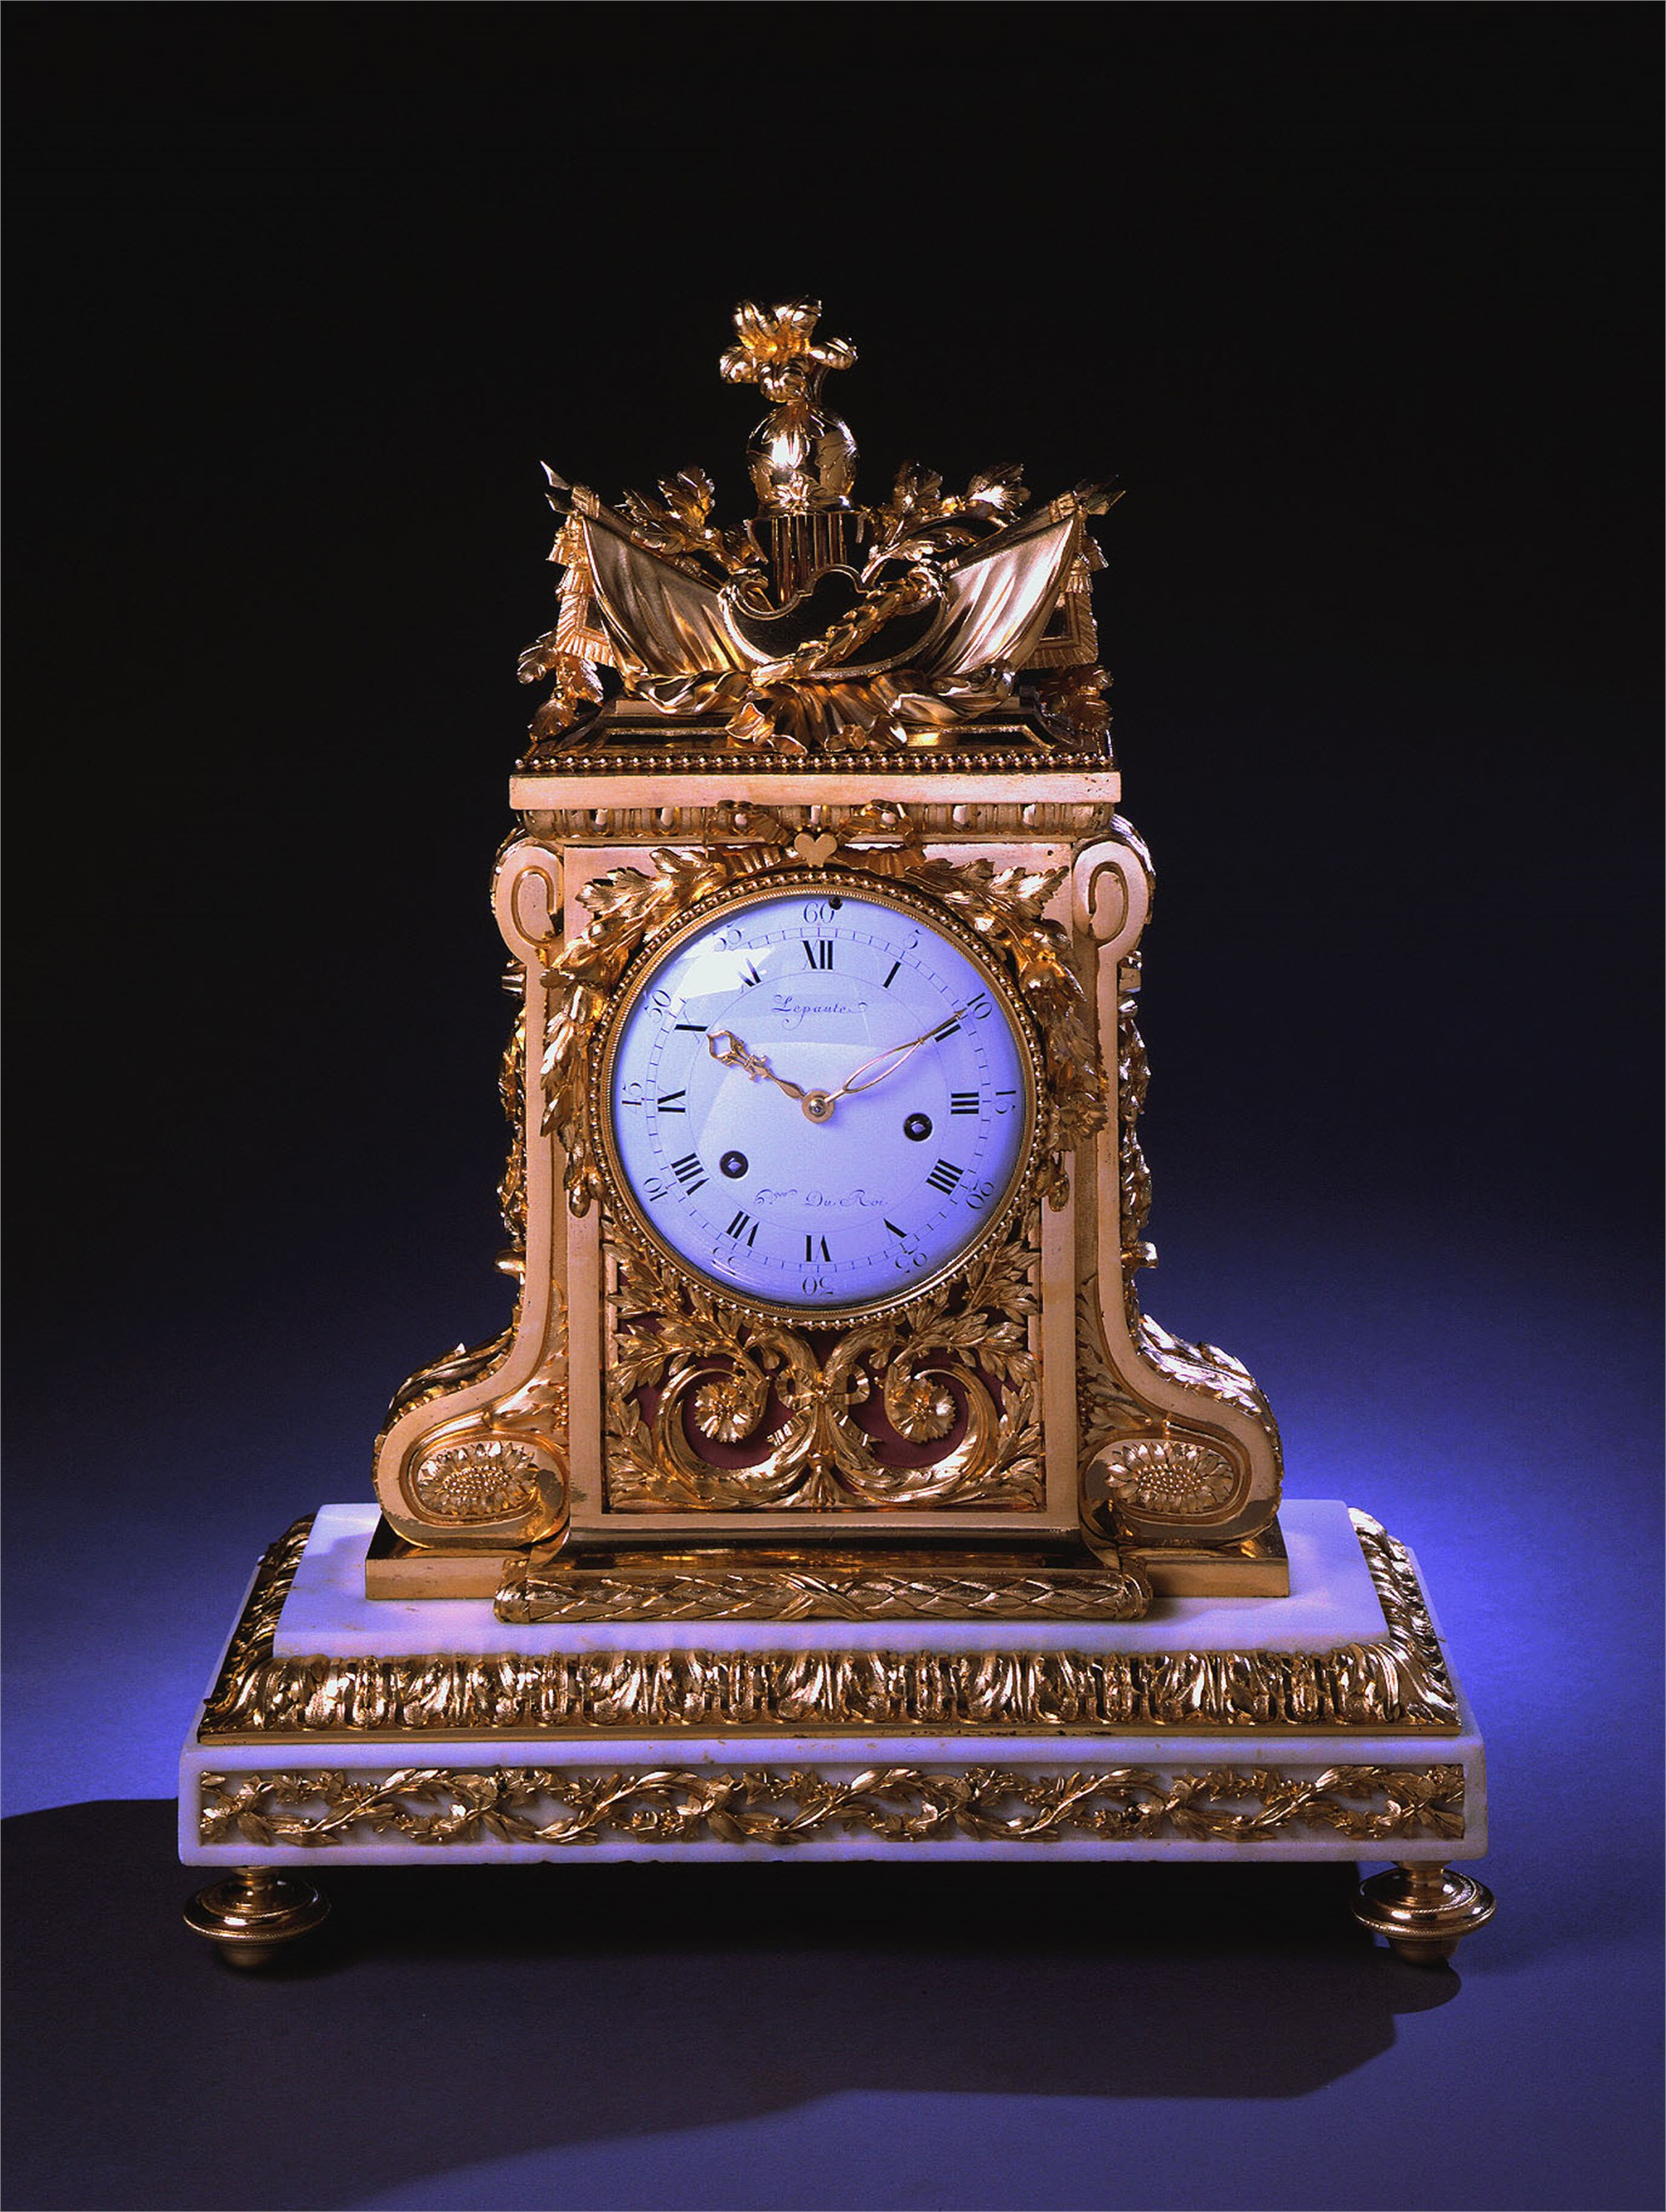 GILT BRONZE AND MARBLE MANTEL CLOCK SIGNED LEPAUTE by Jean-Andre Lepaute